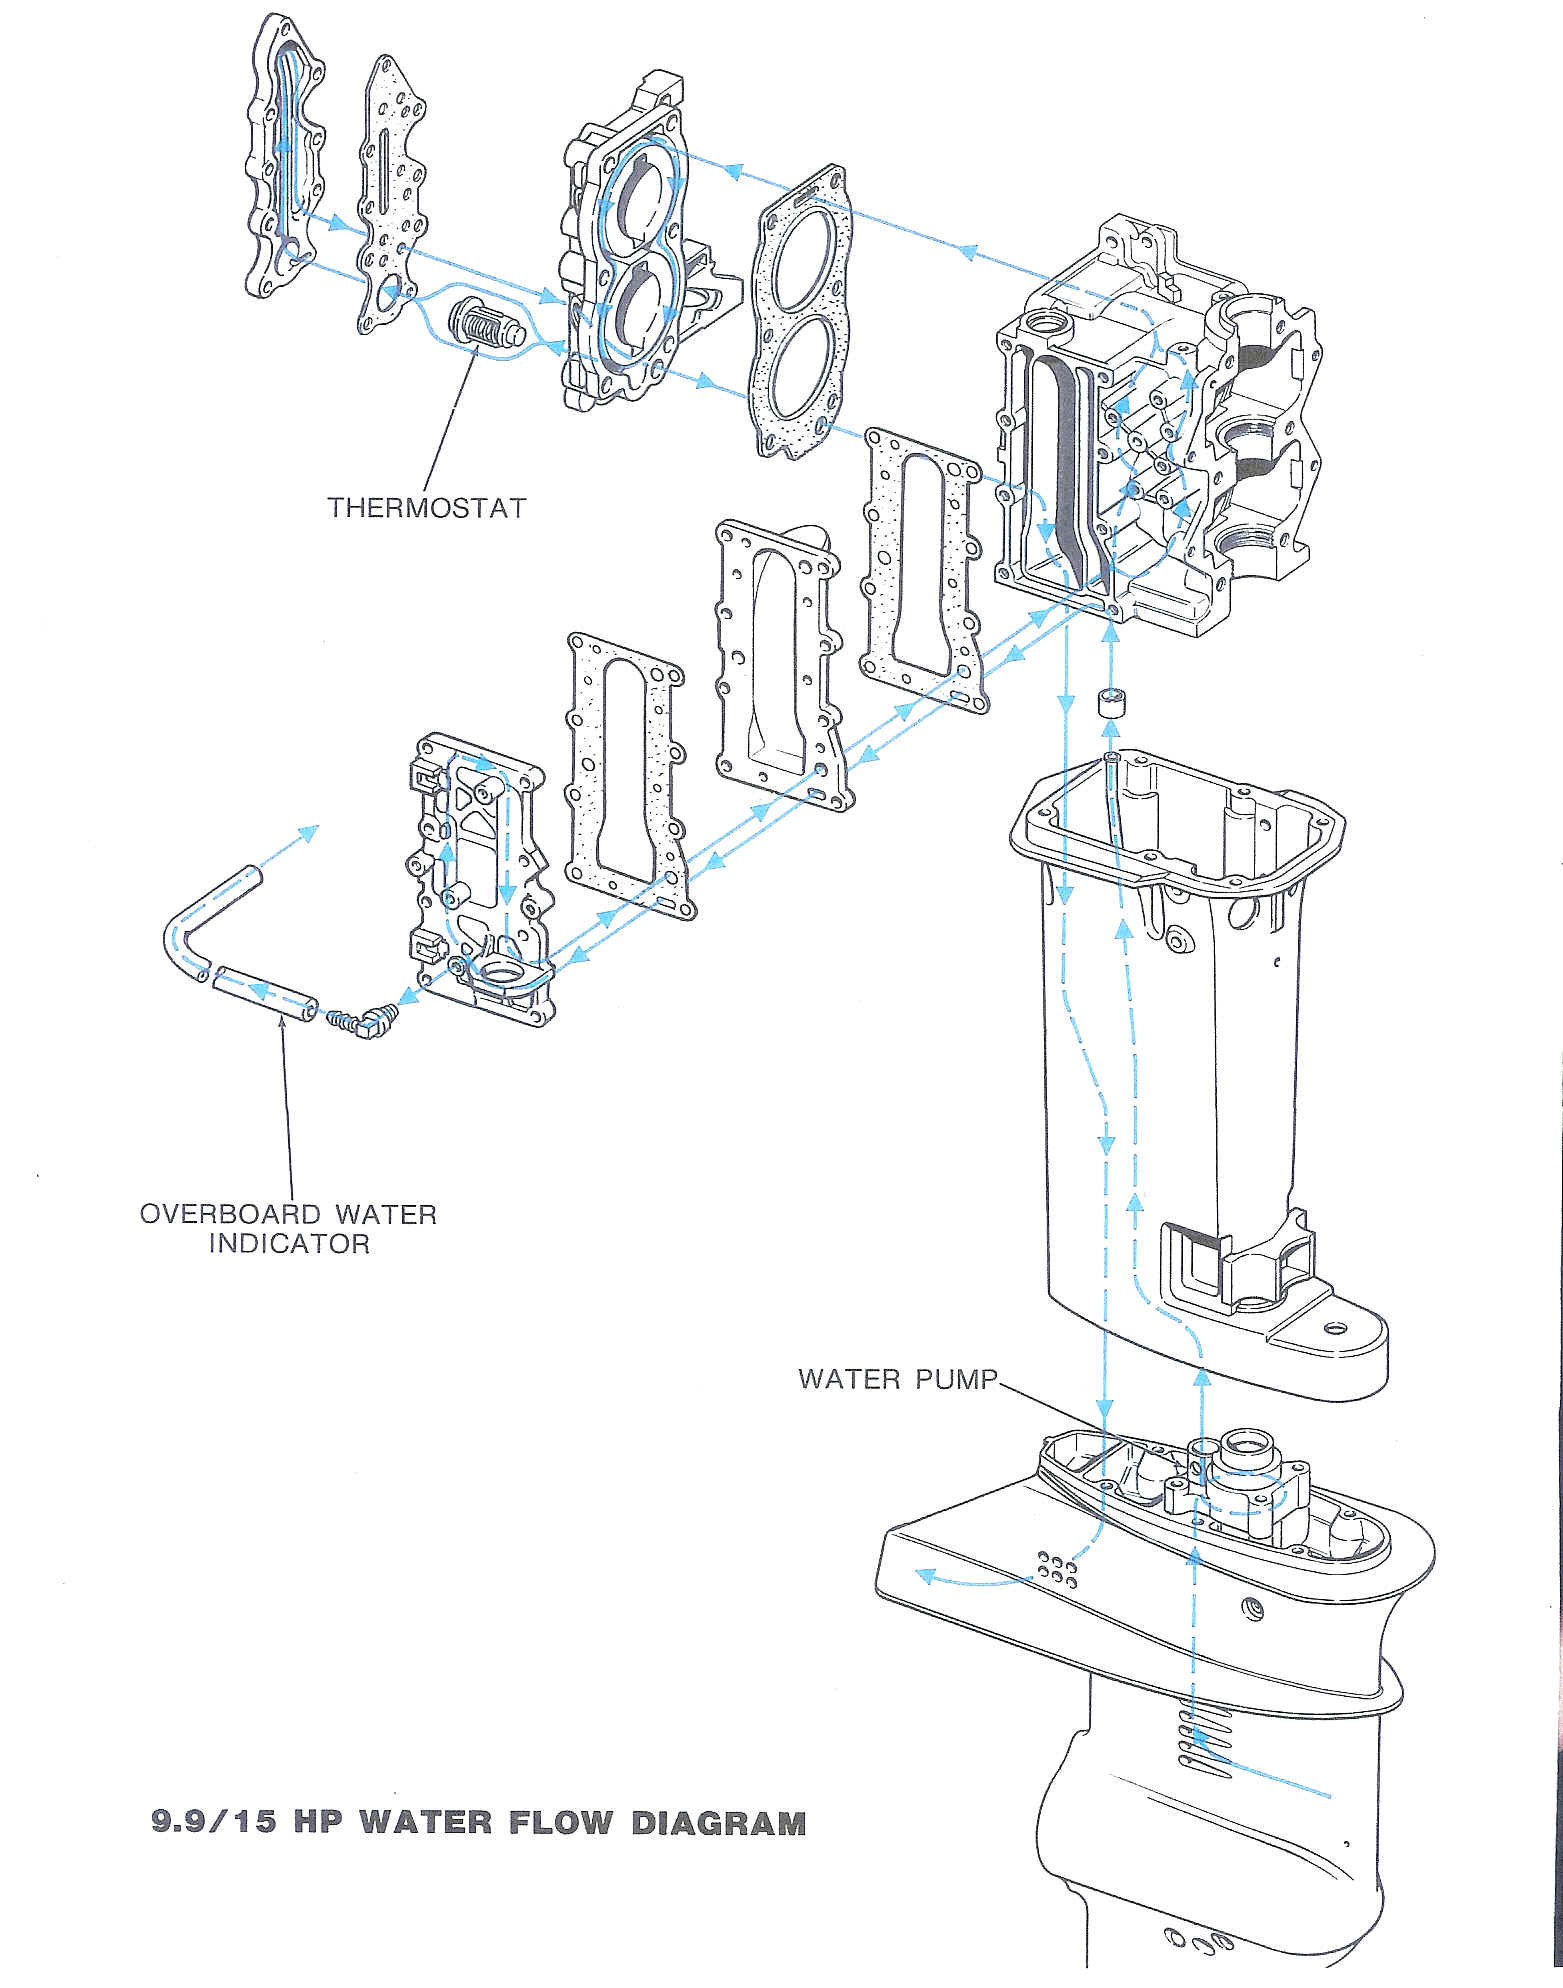 Johnson 15 Fuel Pump Diagram - Wiring Diagrams Hubs - Mercury Outboard Wiring Harness Diagram